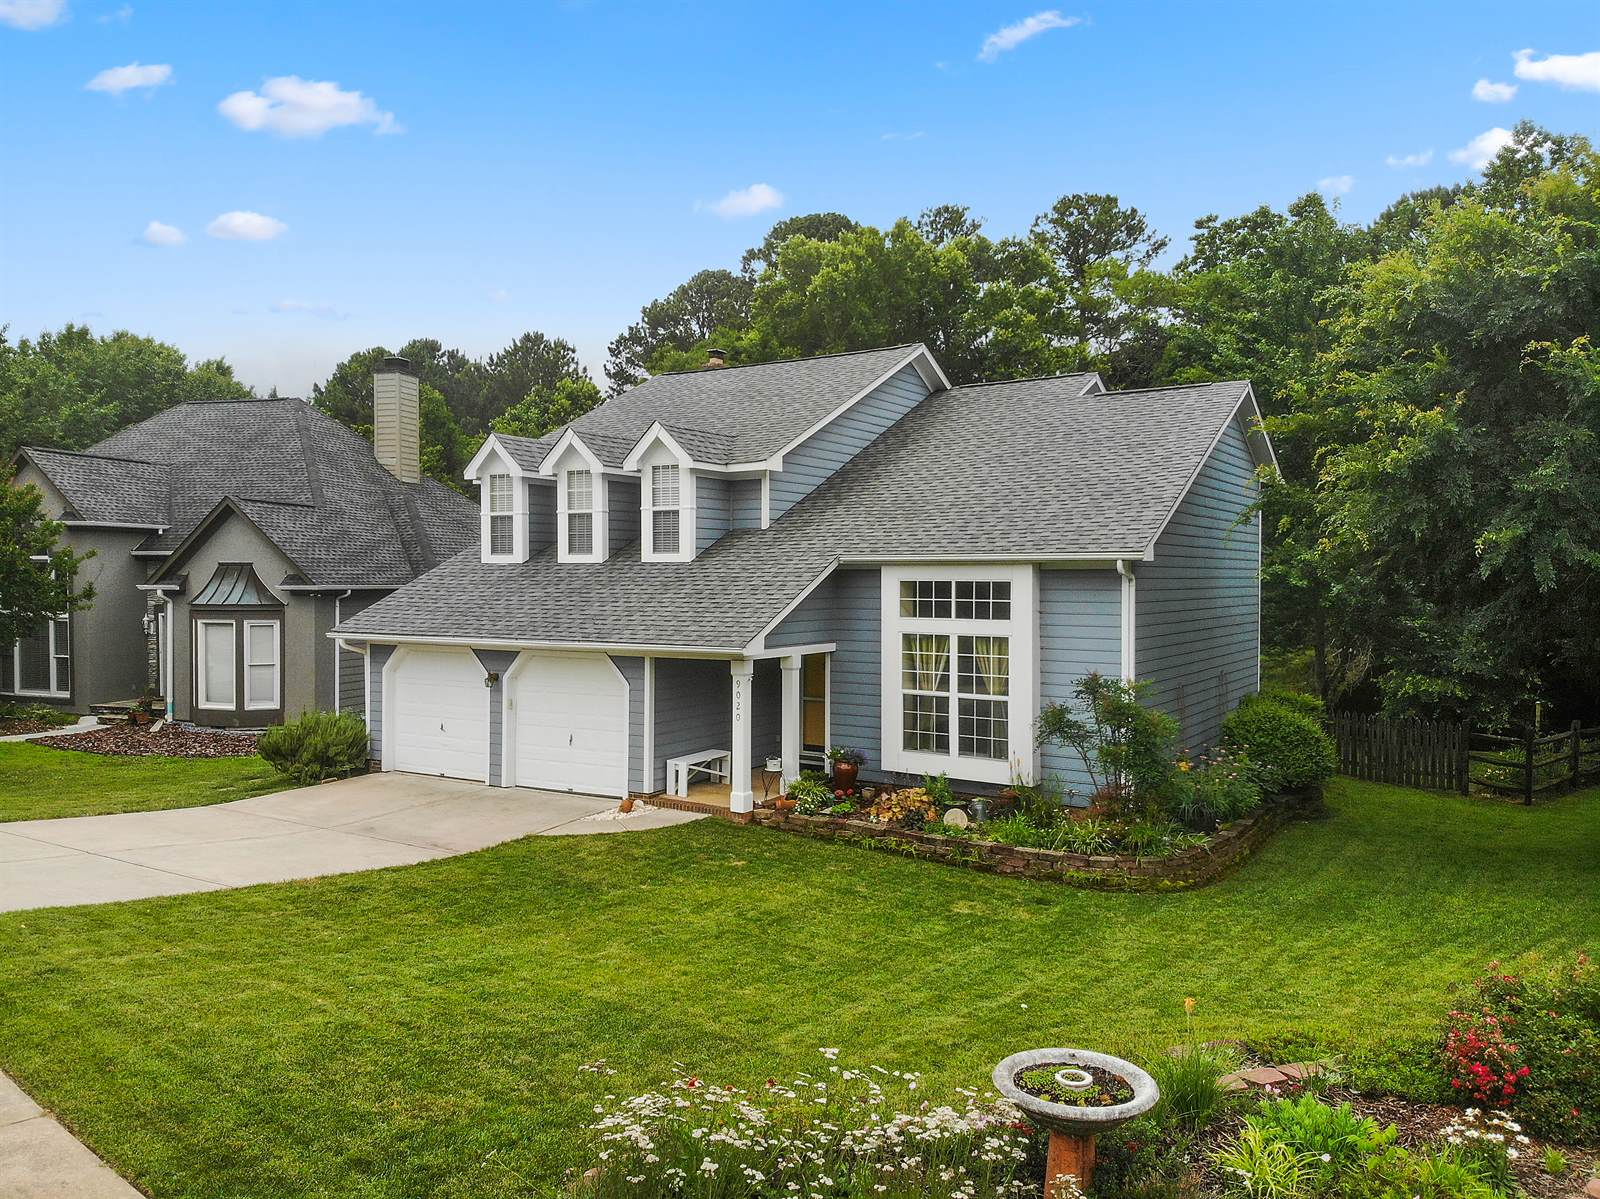 9020 Torrence Crossing, Huntersville, NC 28078